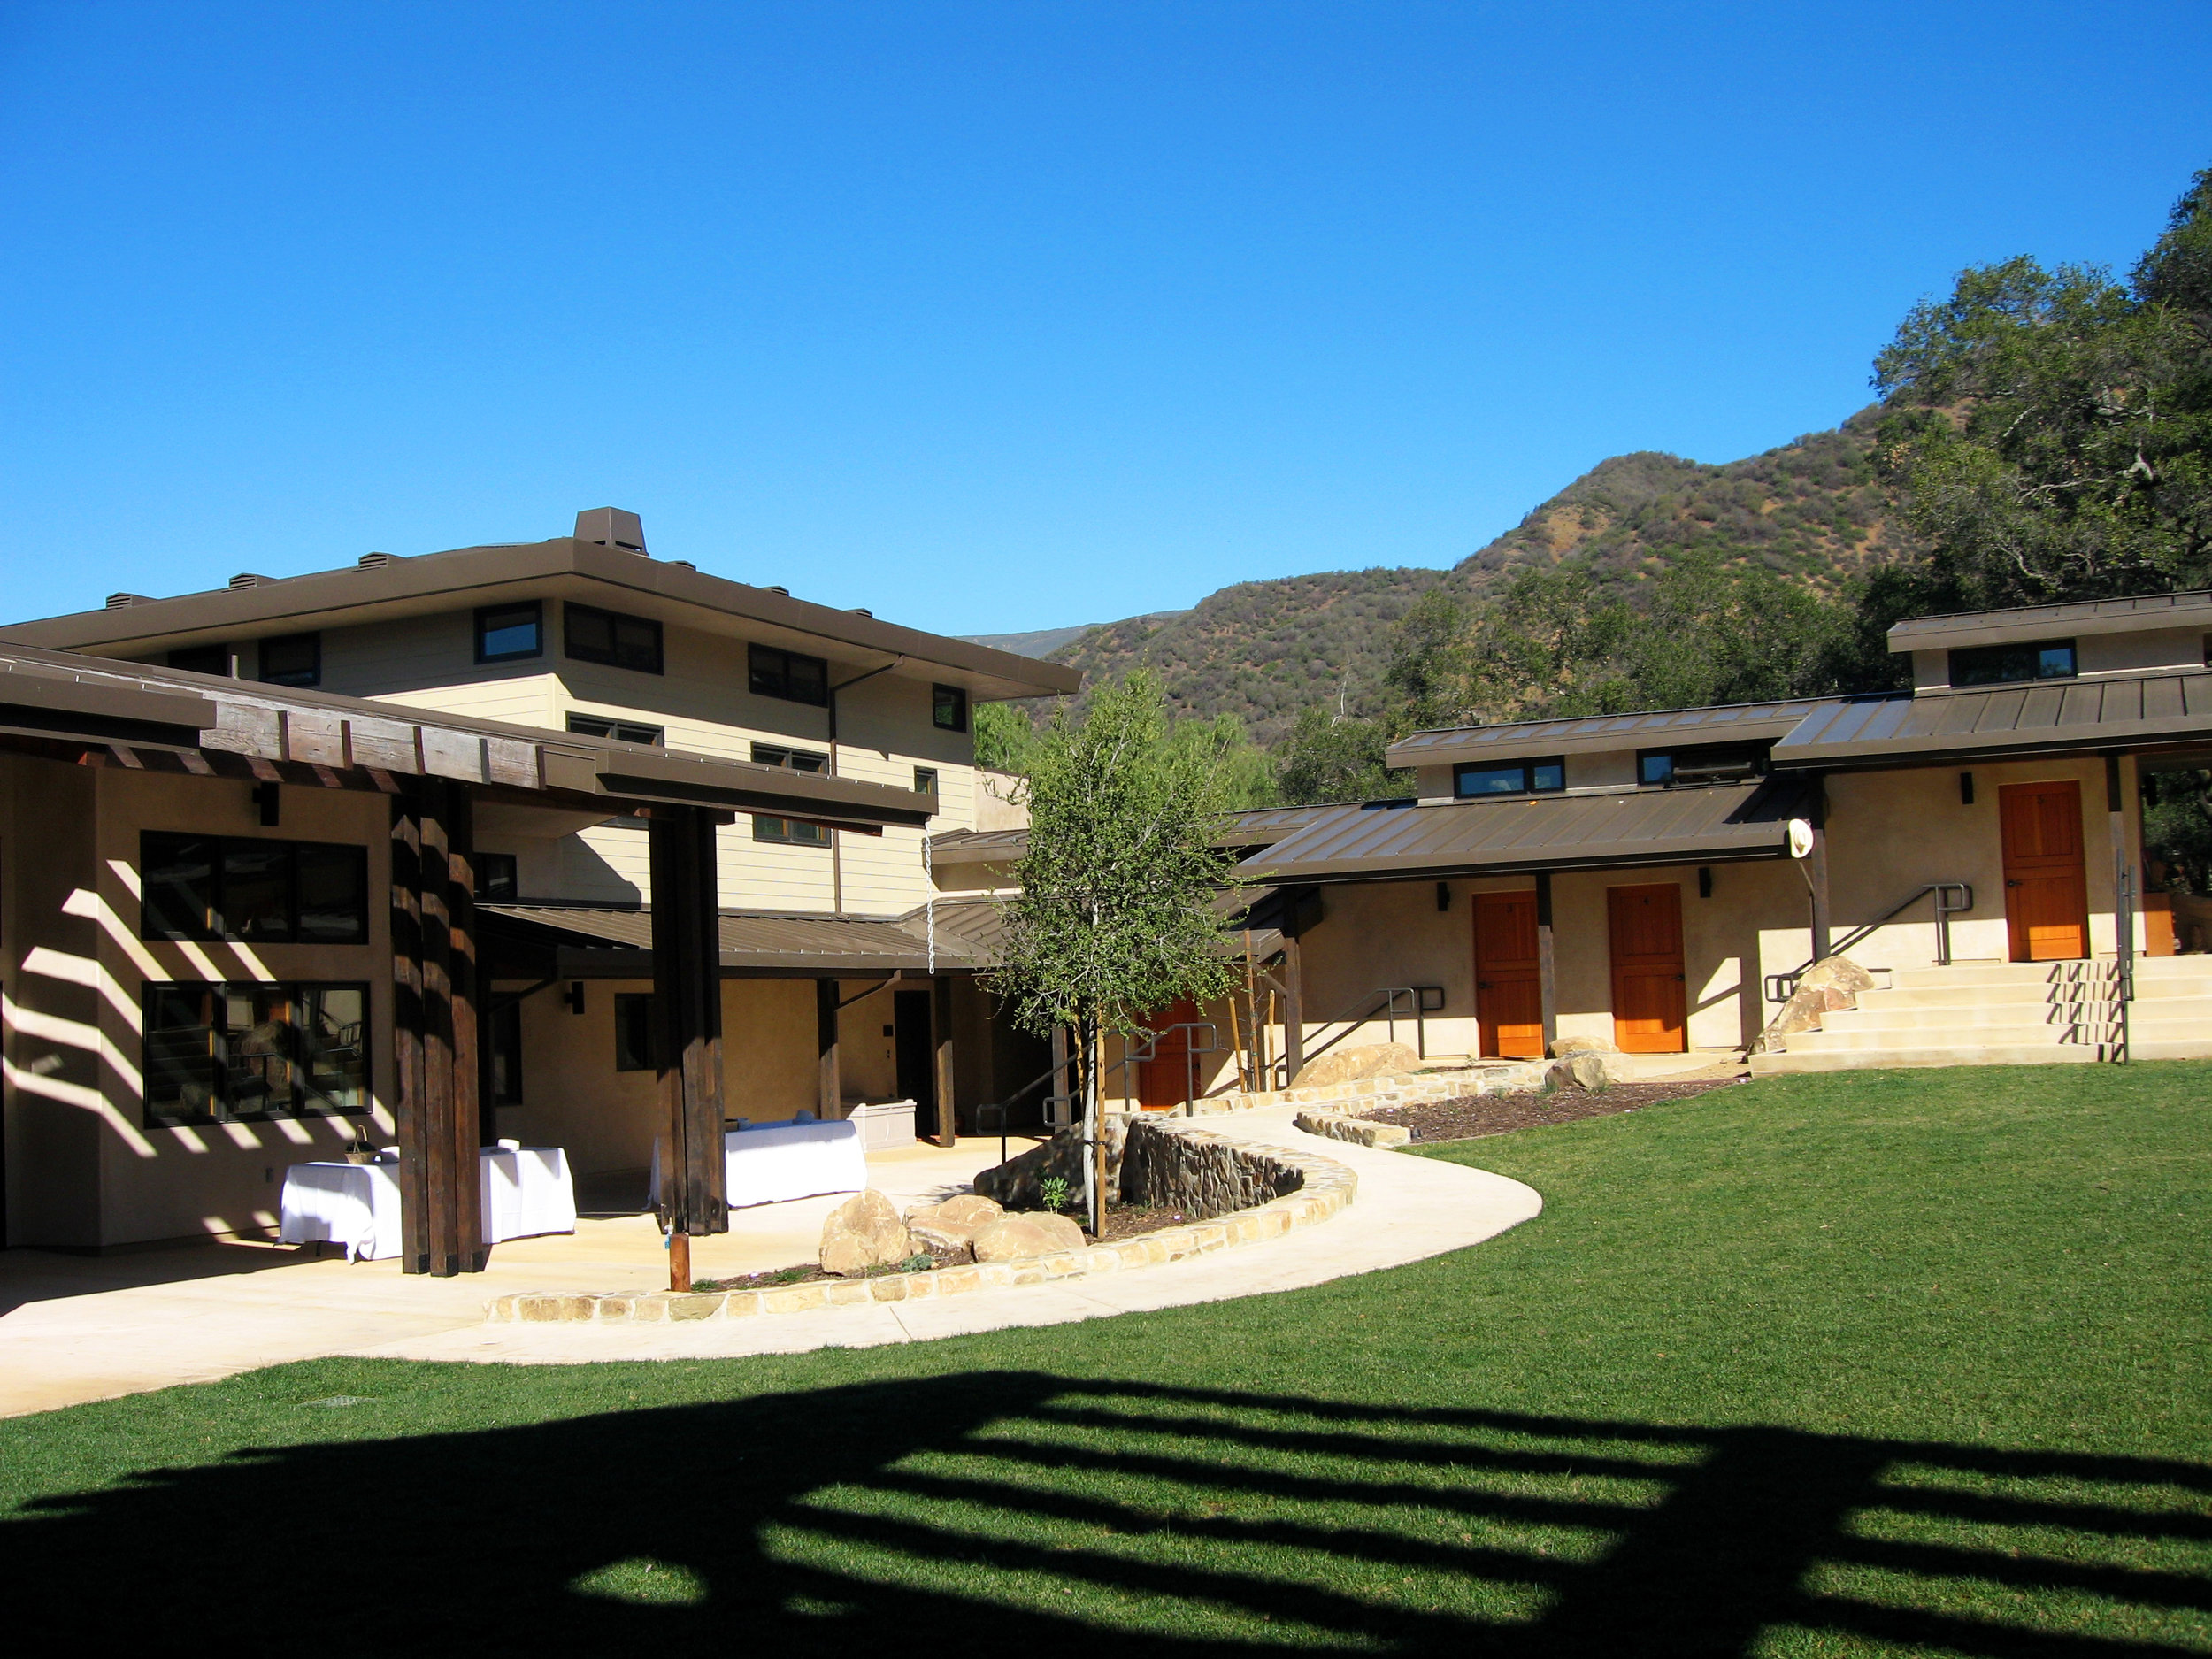 S.E.A.-Studio-Environmental-Architecture-David-Hertz-FAIA-Thacher-School-Dormitory-Ojai-sustainable-regenerative-restorative-green-design-educational-institutional-campus-master-plan-rustic-Ventura-mountain-scenic-biophilic-retreat-modern-ranch-2.jpg